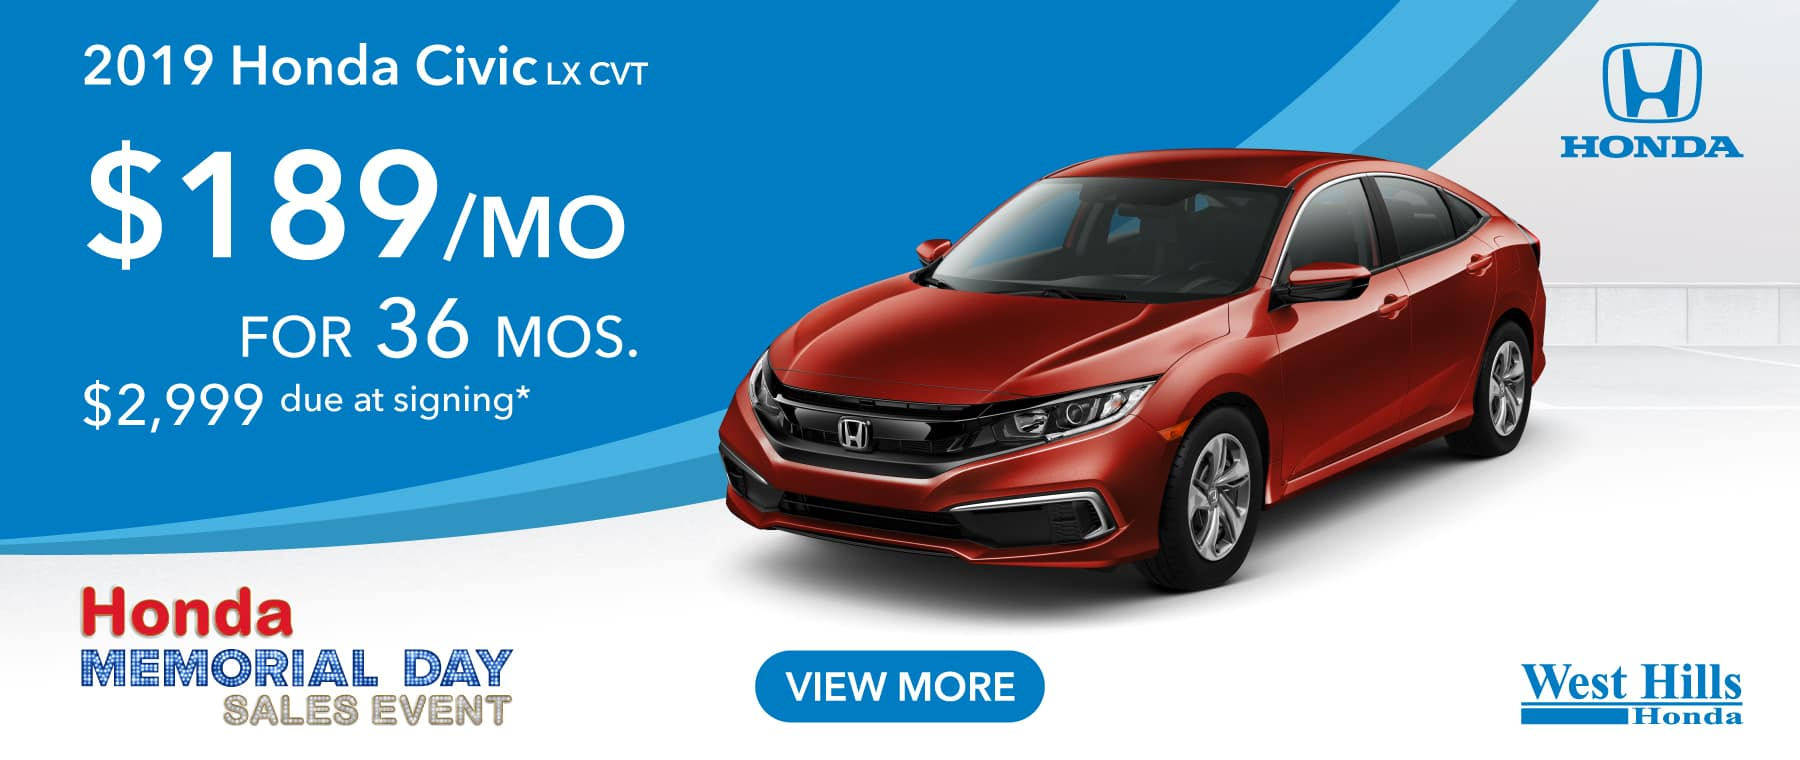 2019 Honda Civic LX CVT (Featured Vehicle)  $189/mo. for 36 mos. $2,999 due at signing*    *Valid on 2019 Honda Civic LX CVT. $189 per mo. for 36 months. Lease with $2,999 due at signing; includes a $595 acquisition fee. Valid on VIN: 19XFC2F62KE203796, 19XFC2F65KE205316, 19XFC2F67KE205351. MSRP starting at $21,145. No Security deposit required. Subject to credit approval. 36 monthly payments required. Not all lessees will qualify for lowest payment through participating lender. Residency restrictions apply. Lessee responsible for maintenance, excessive wear/tear and mileage over 12,000 miles per year at $0.15/mile. Option to purchase at lease end. Excludes state and local taxes, tags, registration and title, insurance and dealer charges. A negotiable dealer documentary service fee of up to $150 may be added to the sale price or capitalized cost. Offer expires 7/8/2019.